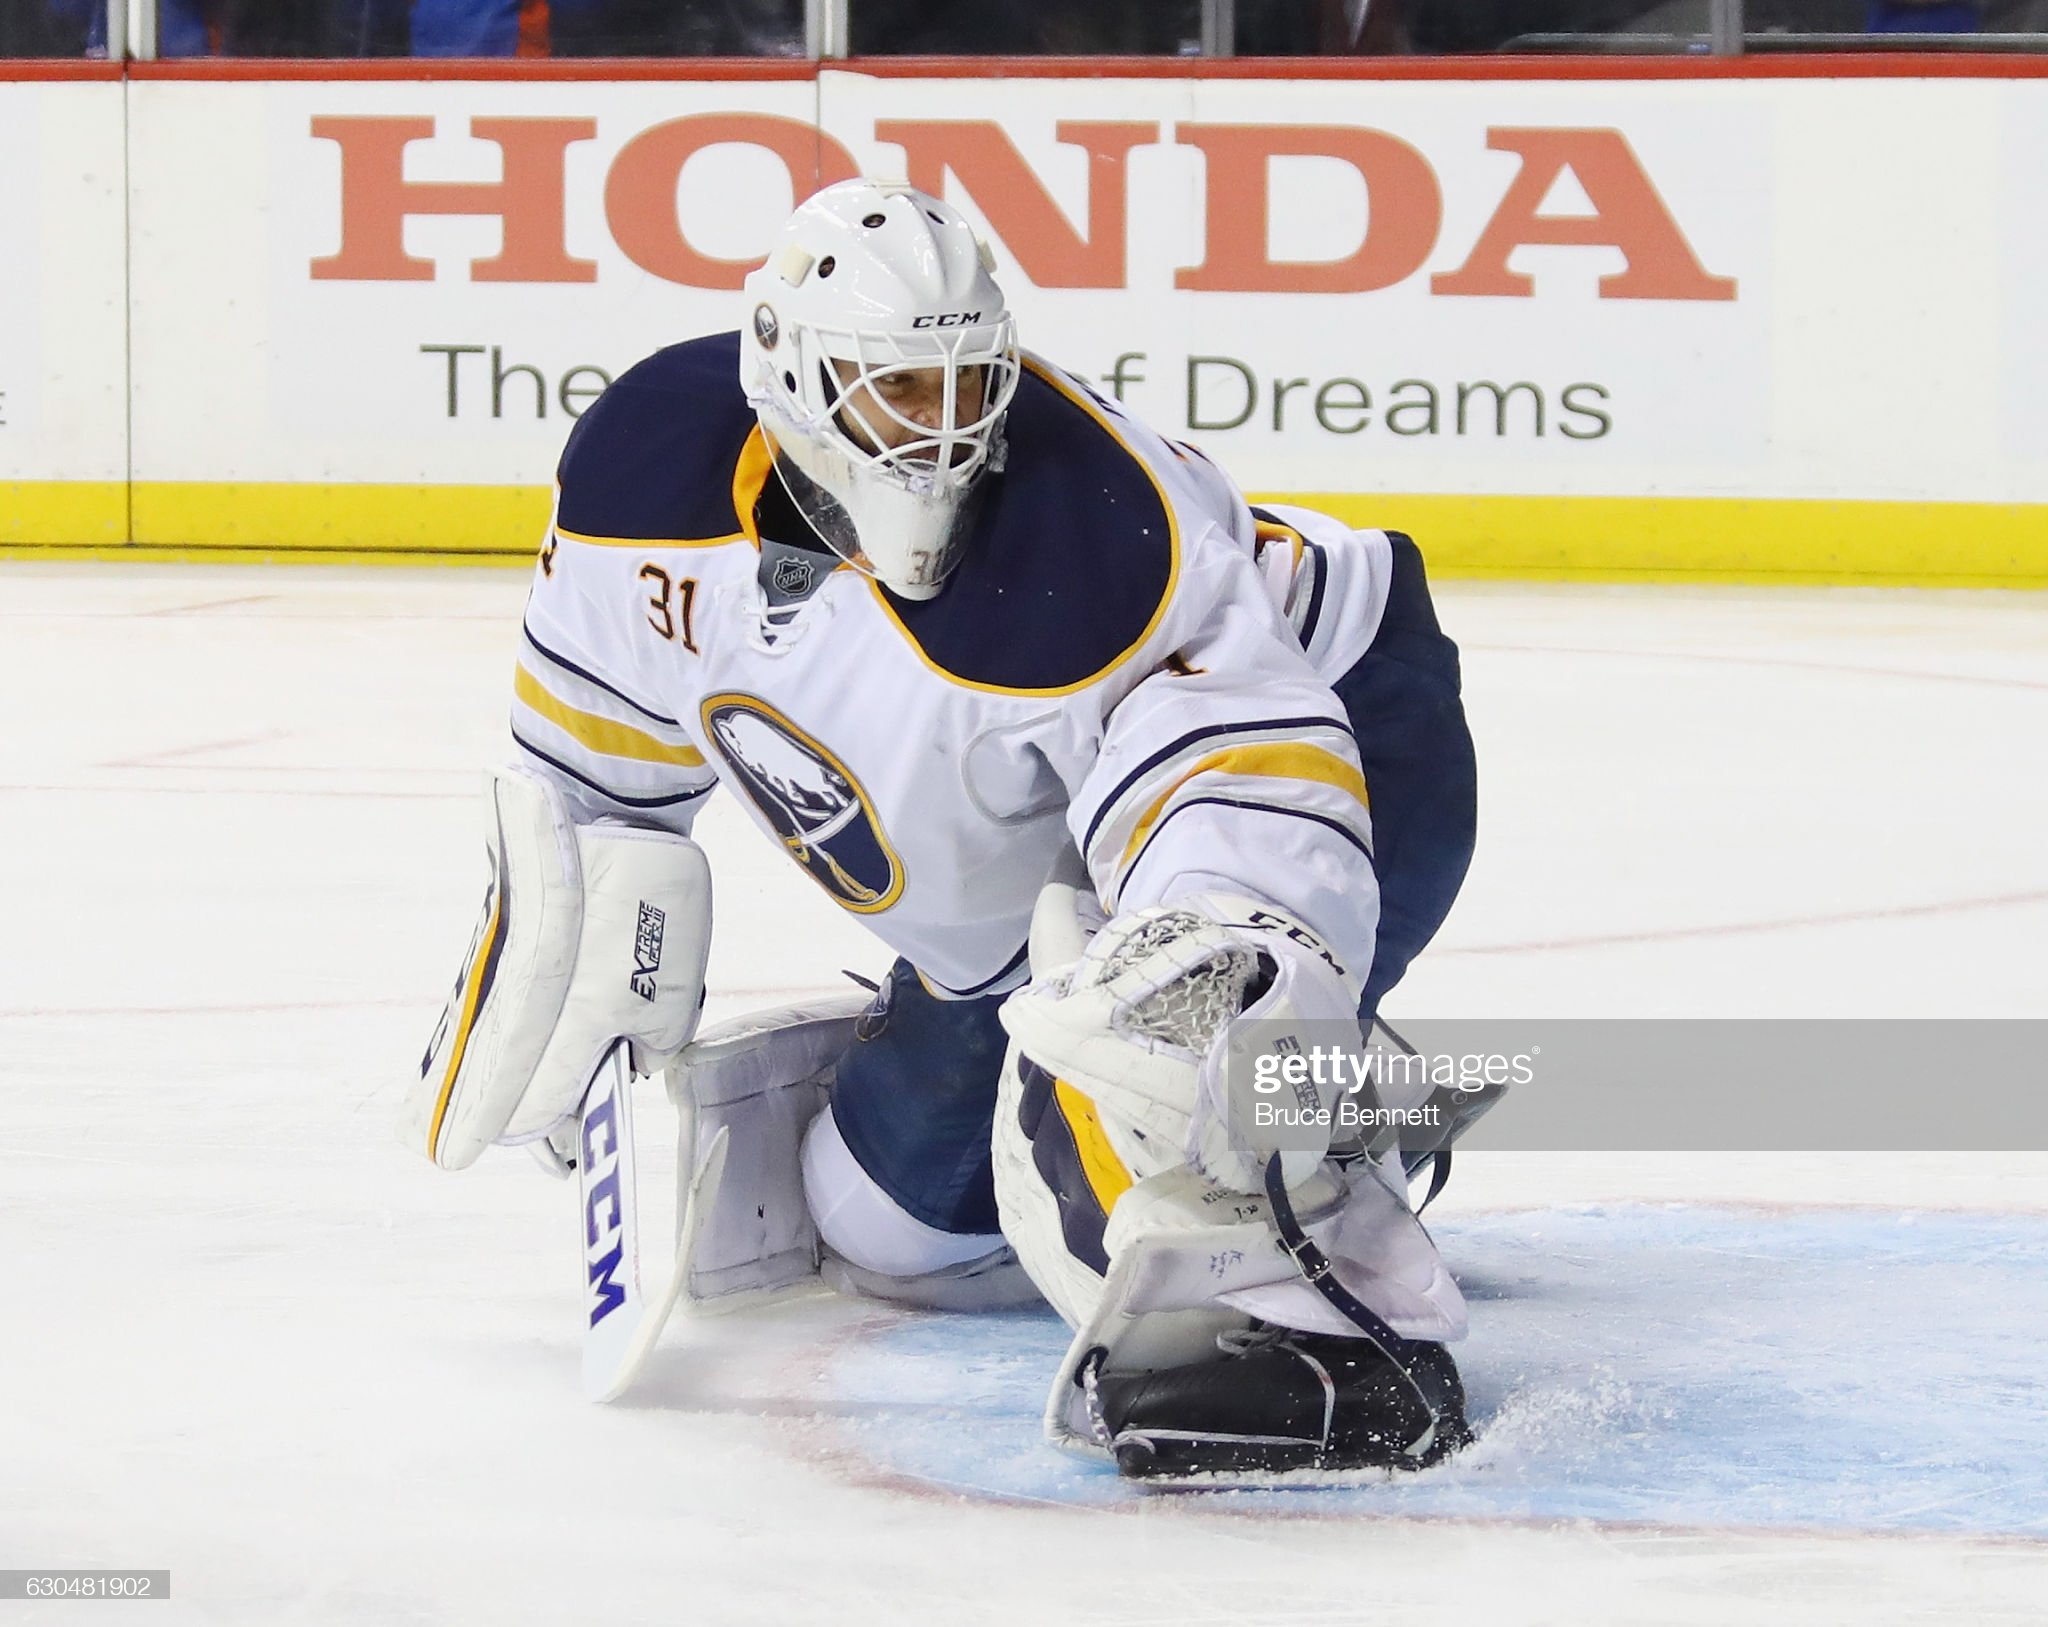 anders-nilsson-of-the-buffalo-sabres-ska